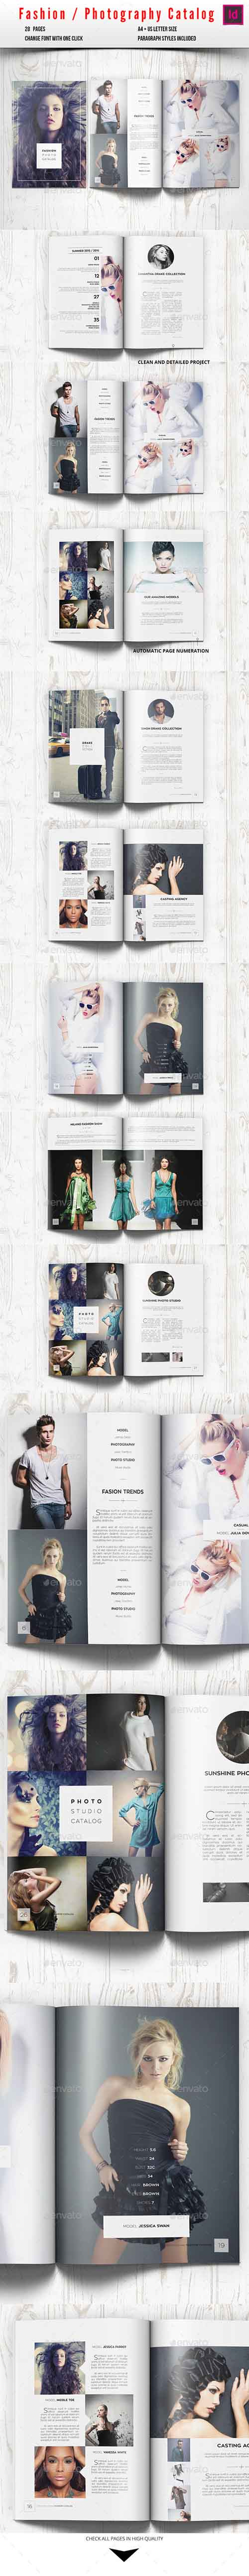 Fashion Photography Catalog / Brochure 10277338